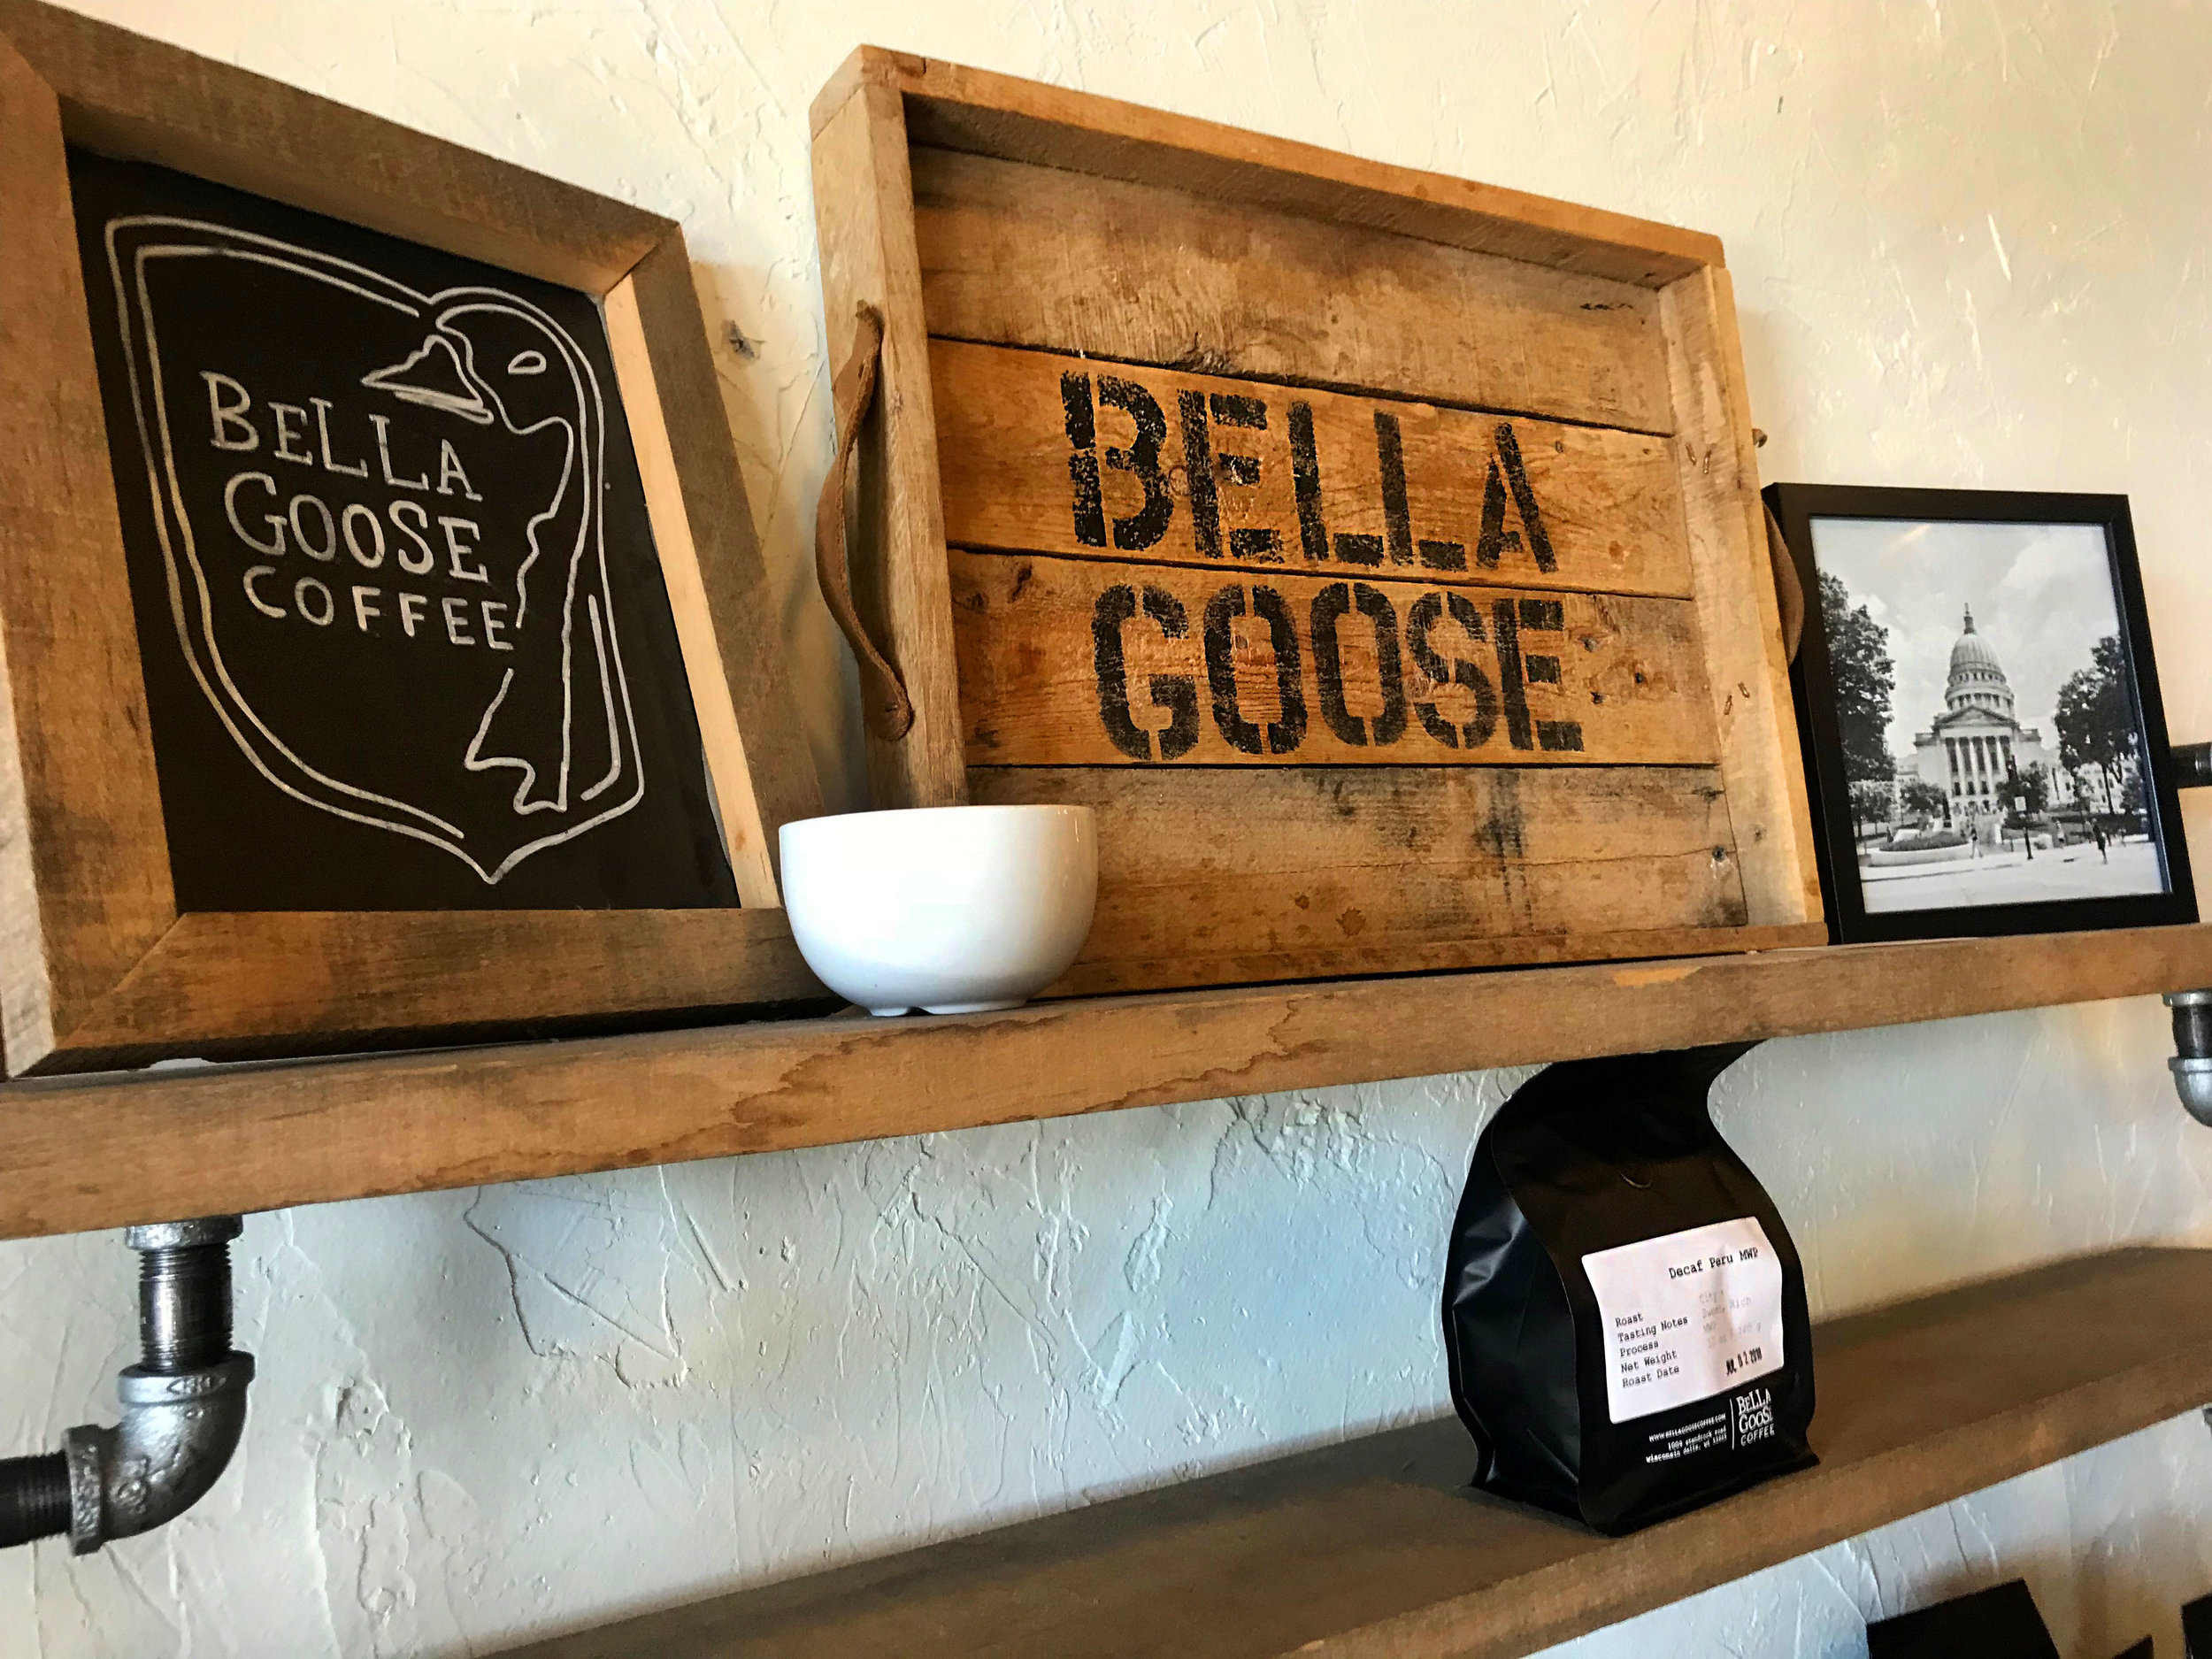 BELLA GOOSE - COFEE CHANGING LIVES